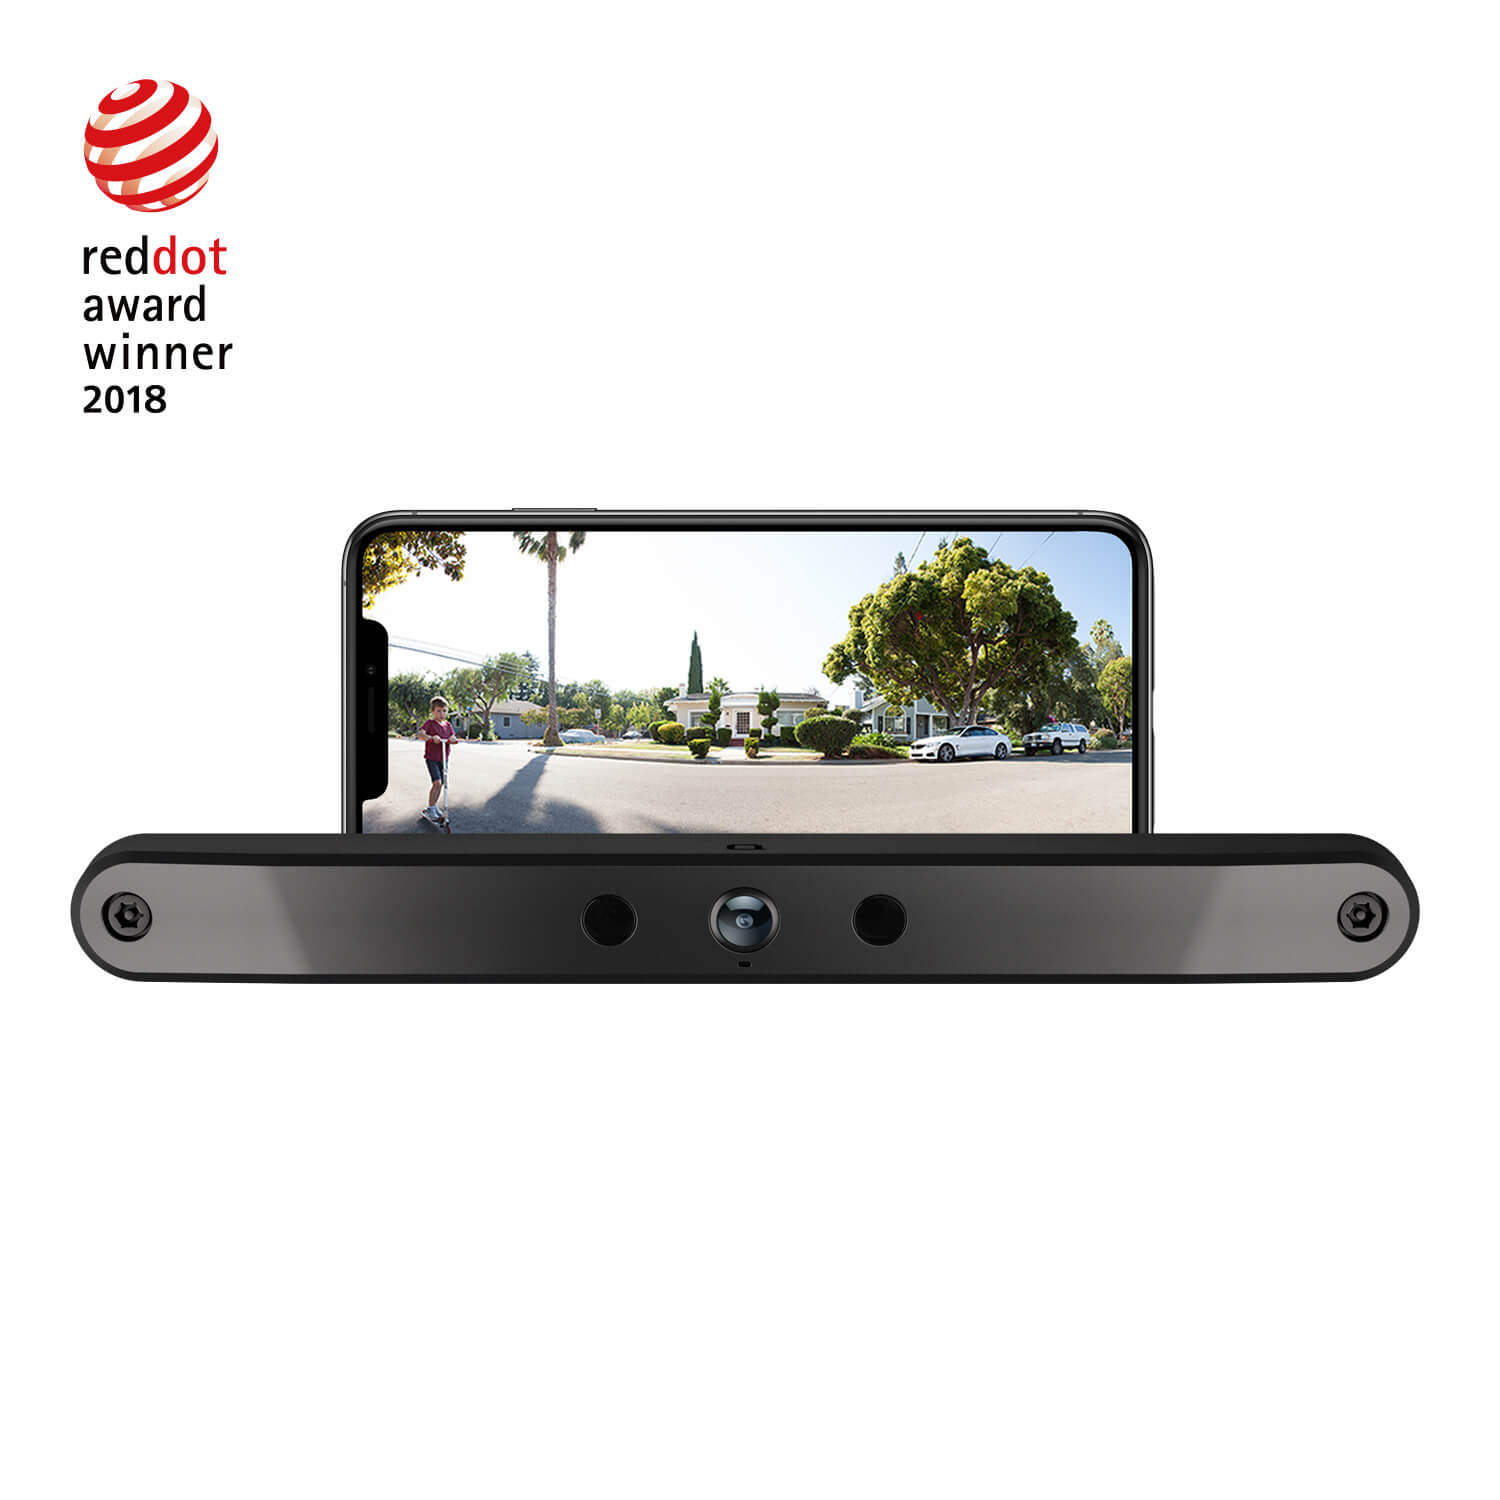 Wireless Smart Backup Camera<meta charset= utf-8 ><p><span>Eliminate blind spots and reduce the chances of an accident with our wireless backup camera kit. The camera is easy to install, charge and manage on your smart device.</span></p><p><span>Key Features:</span></p><meta charset= utf-8 ><p><span>- 170-Degree Wide Angle View<br>- Total Wireless<br>- Self-install in 10 Minutes</span></p>